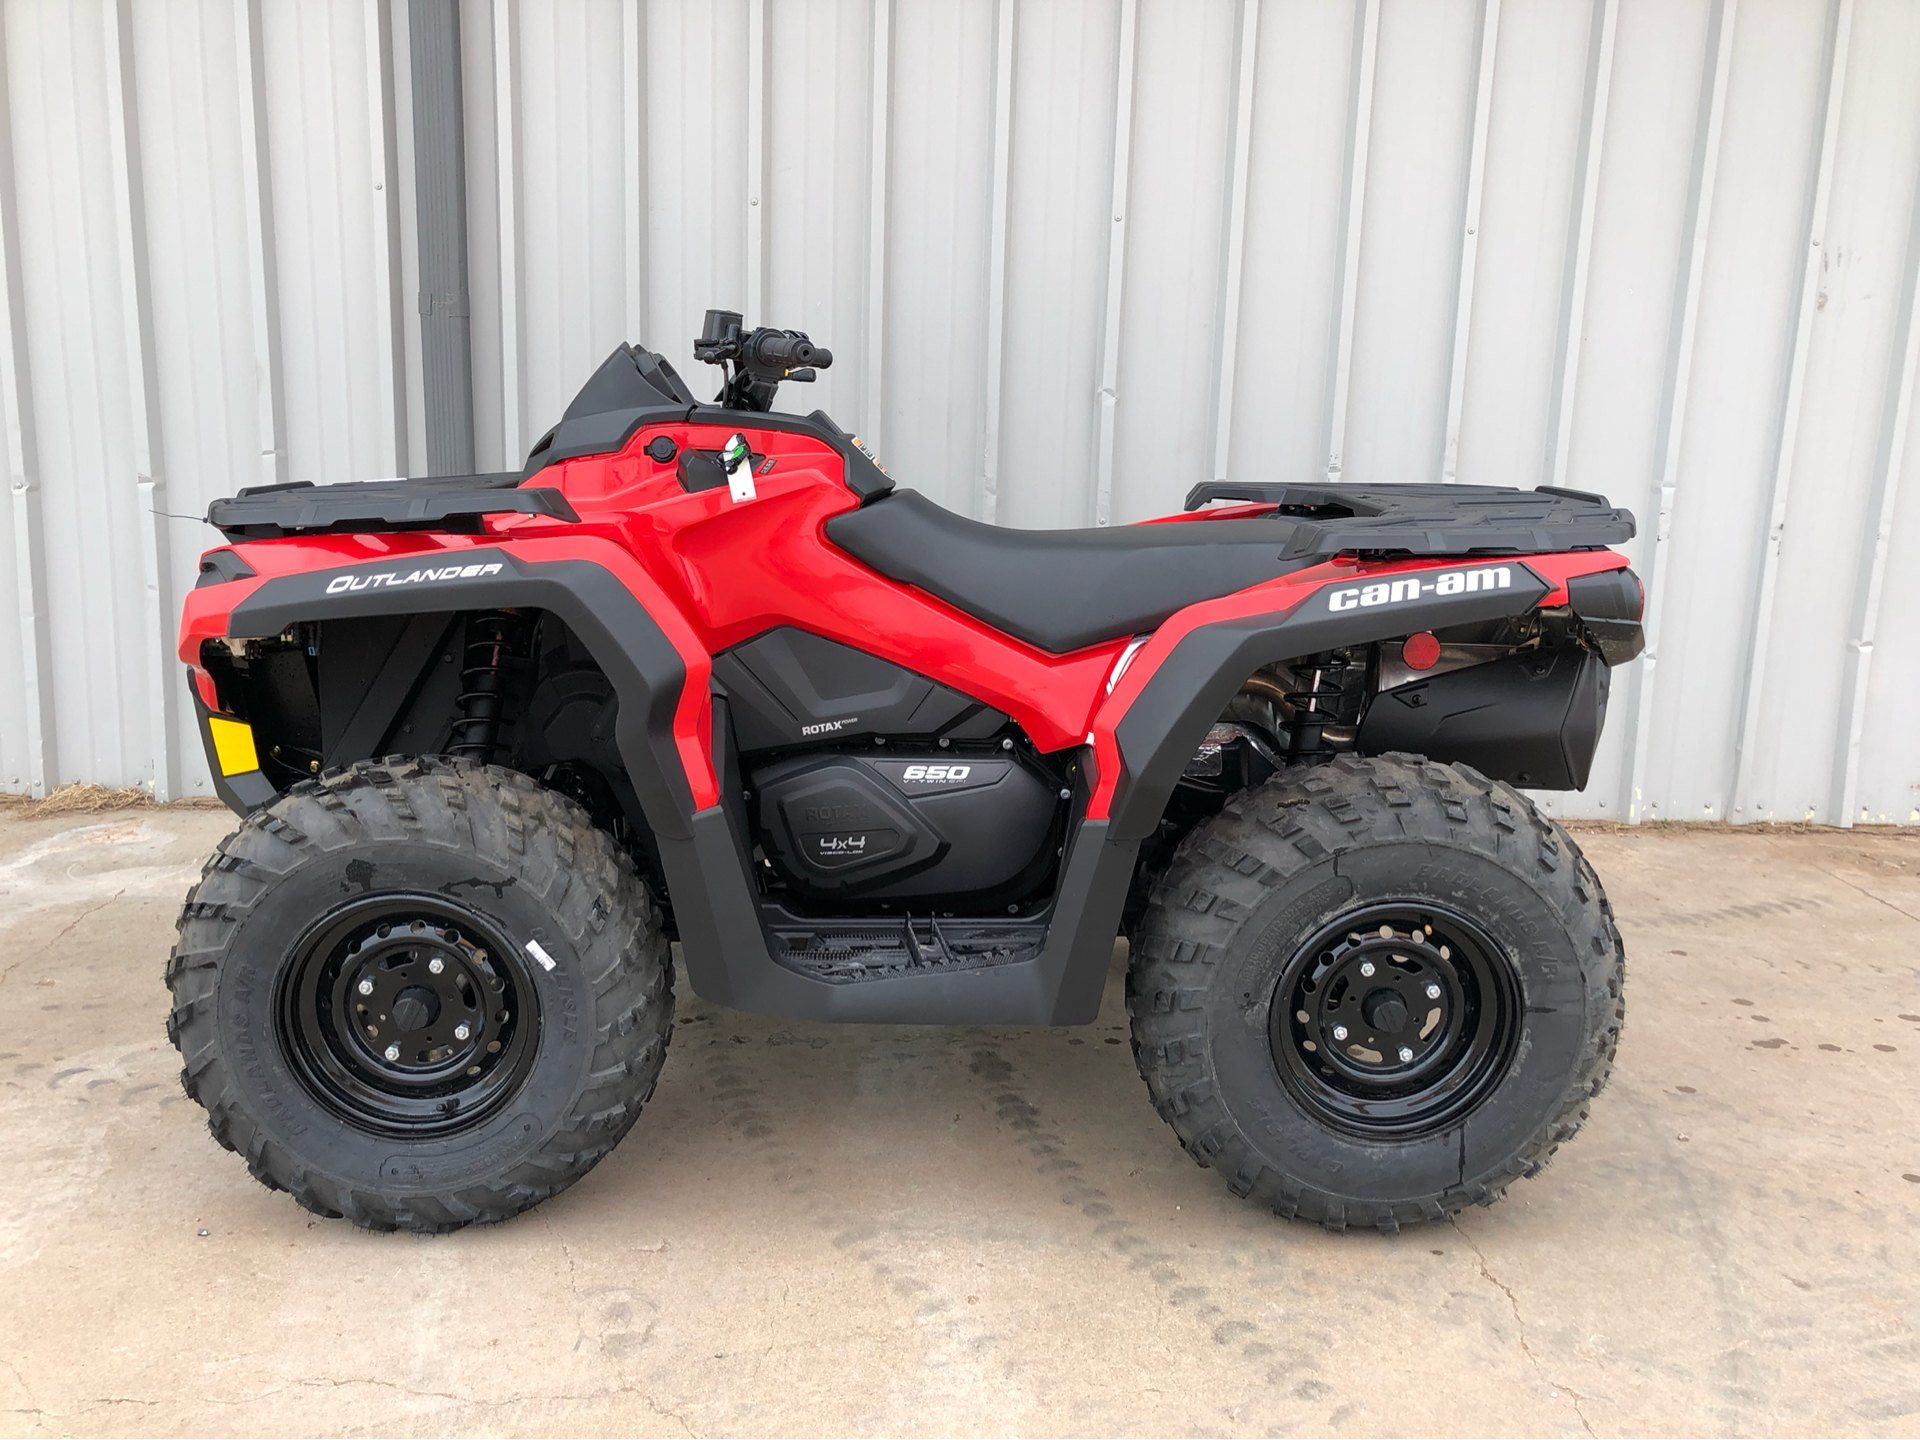 2019 Can-Am Outlander 650 for sale 76833